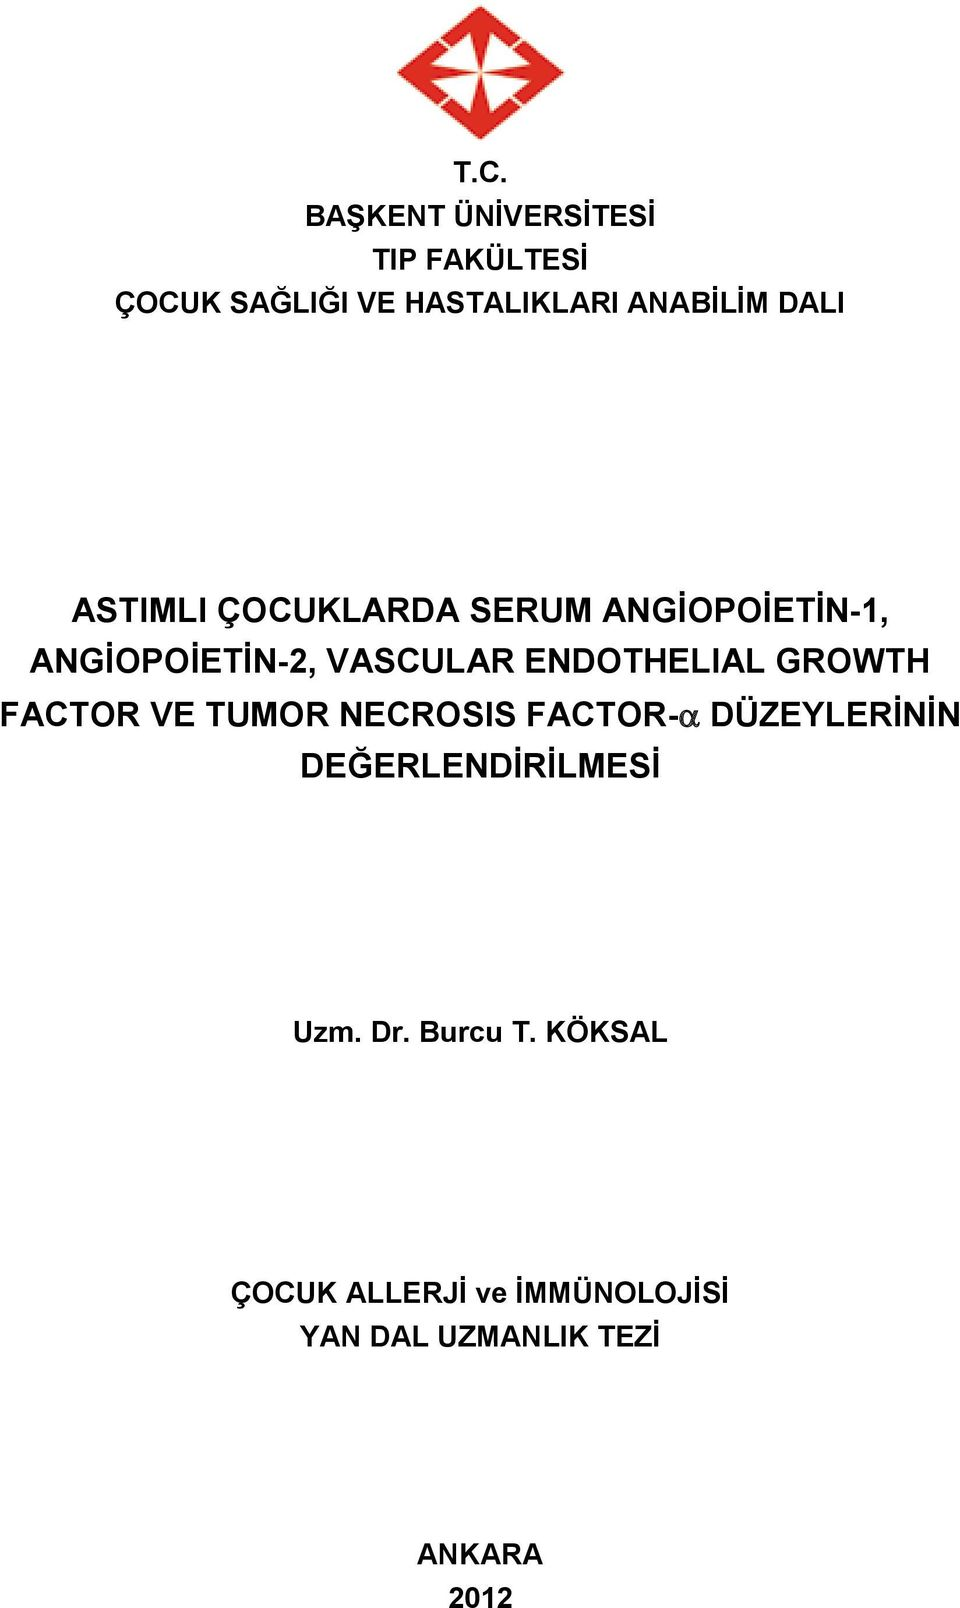 ENDOTHELIAL GROWTH FACTOR VE TUMOR NECROSIS FACTOR- DÜZEYLERİNİN